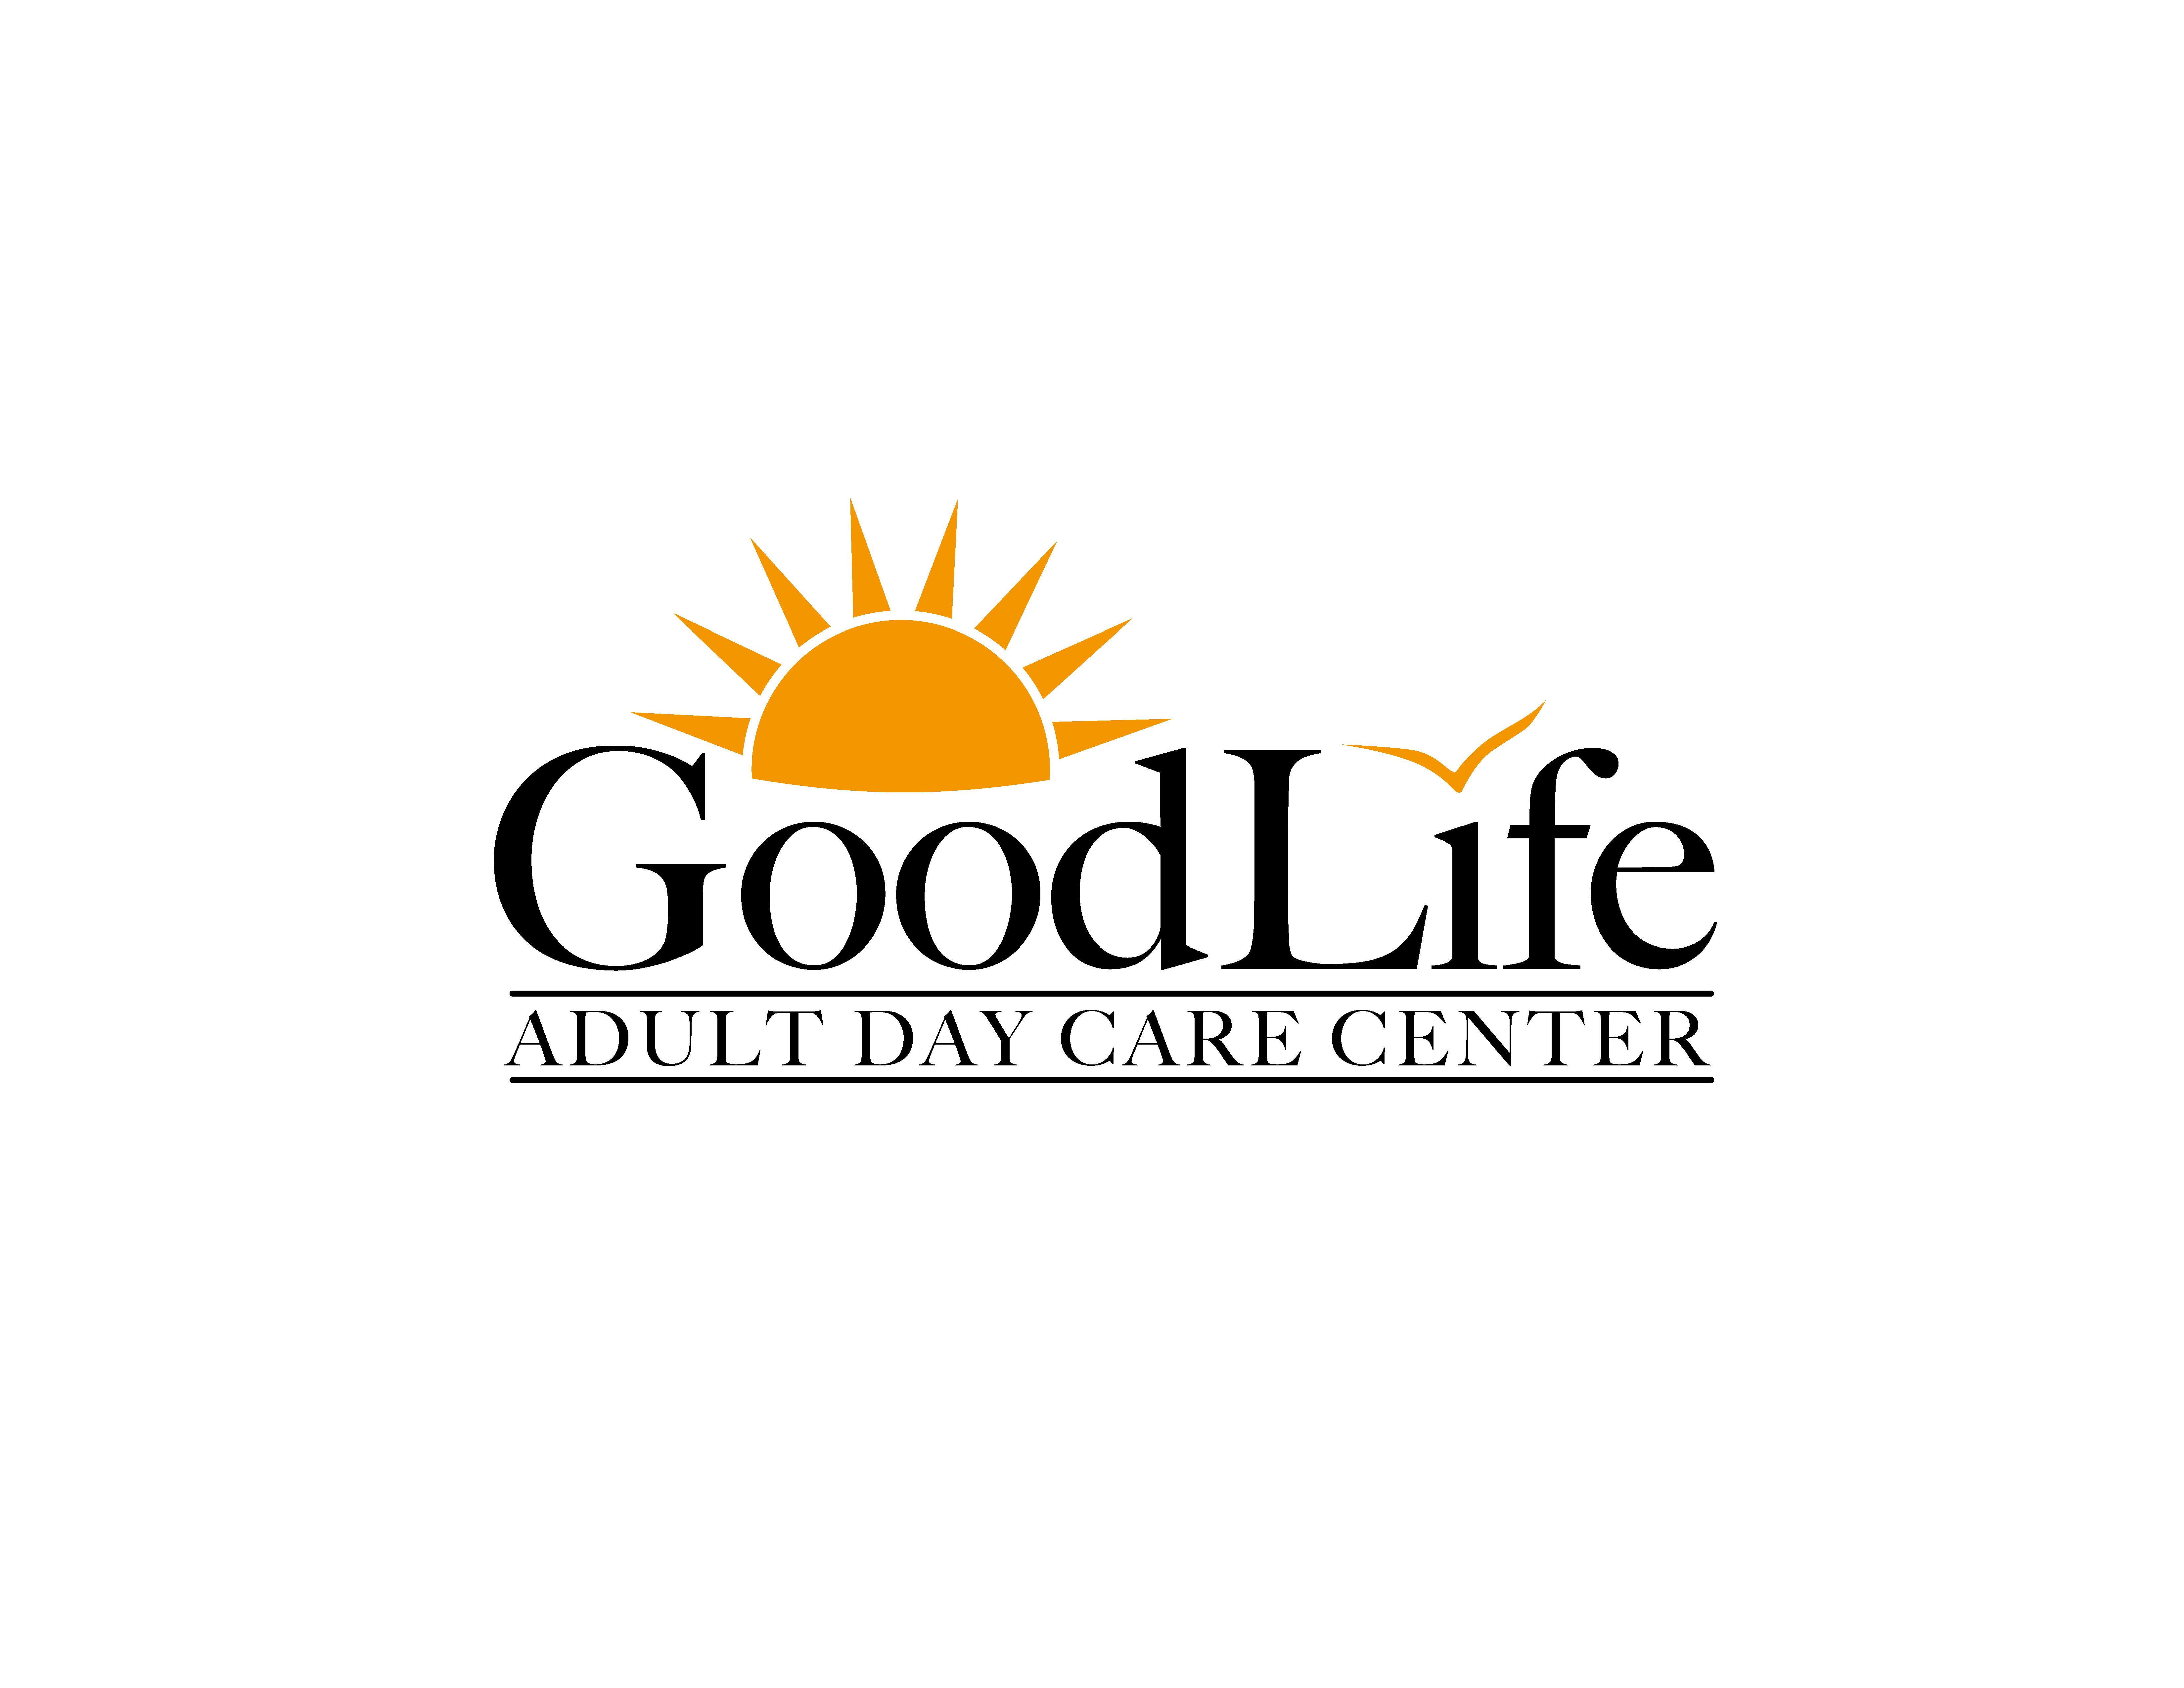 GoodLife Adult Day Care Center